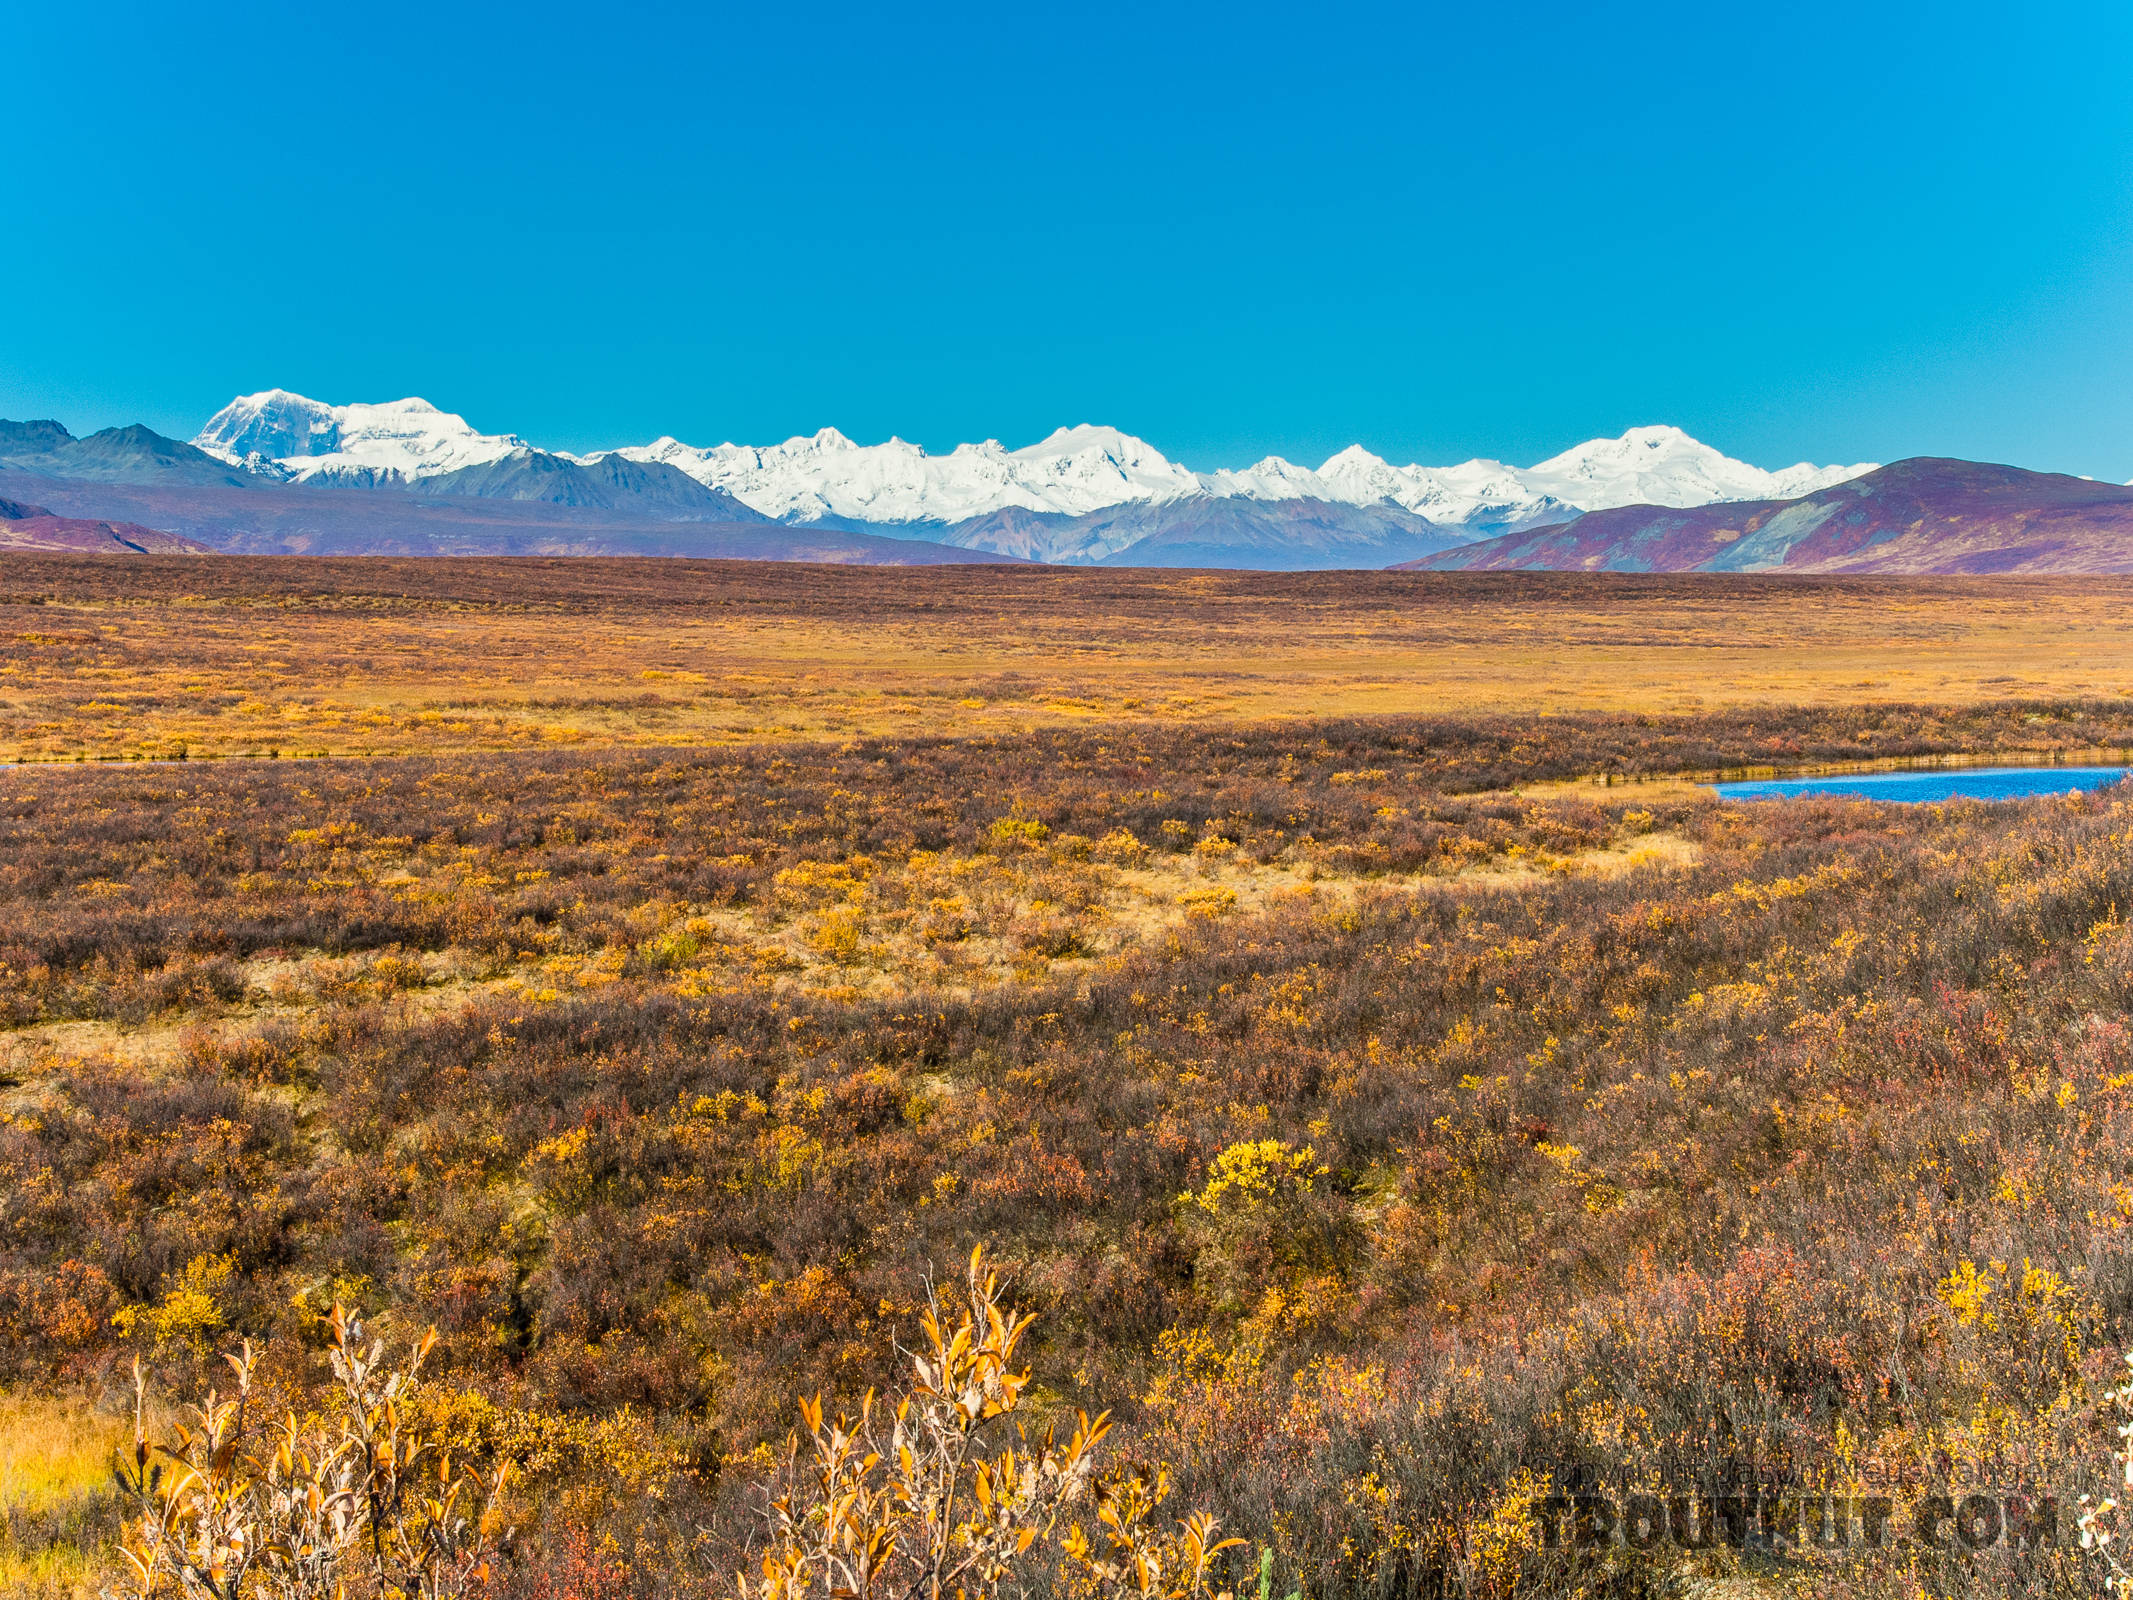 Alaska Range from Mile 52 Denali Highway. The left-most double peak is 12,510-foot Mt Shand (left) and 13,020-foot Mt Moffit (right). The other two tall peaks, middle and right, are unnamed (at least on Google Earth). The peak on the horizon about 2/3 of the way from Mt Moffit to the unnamed middle peak is 11,400-foot McGinnis Peak. From Denali Highway in Alaska.